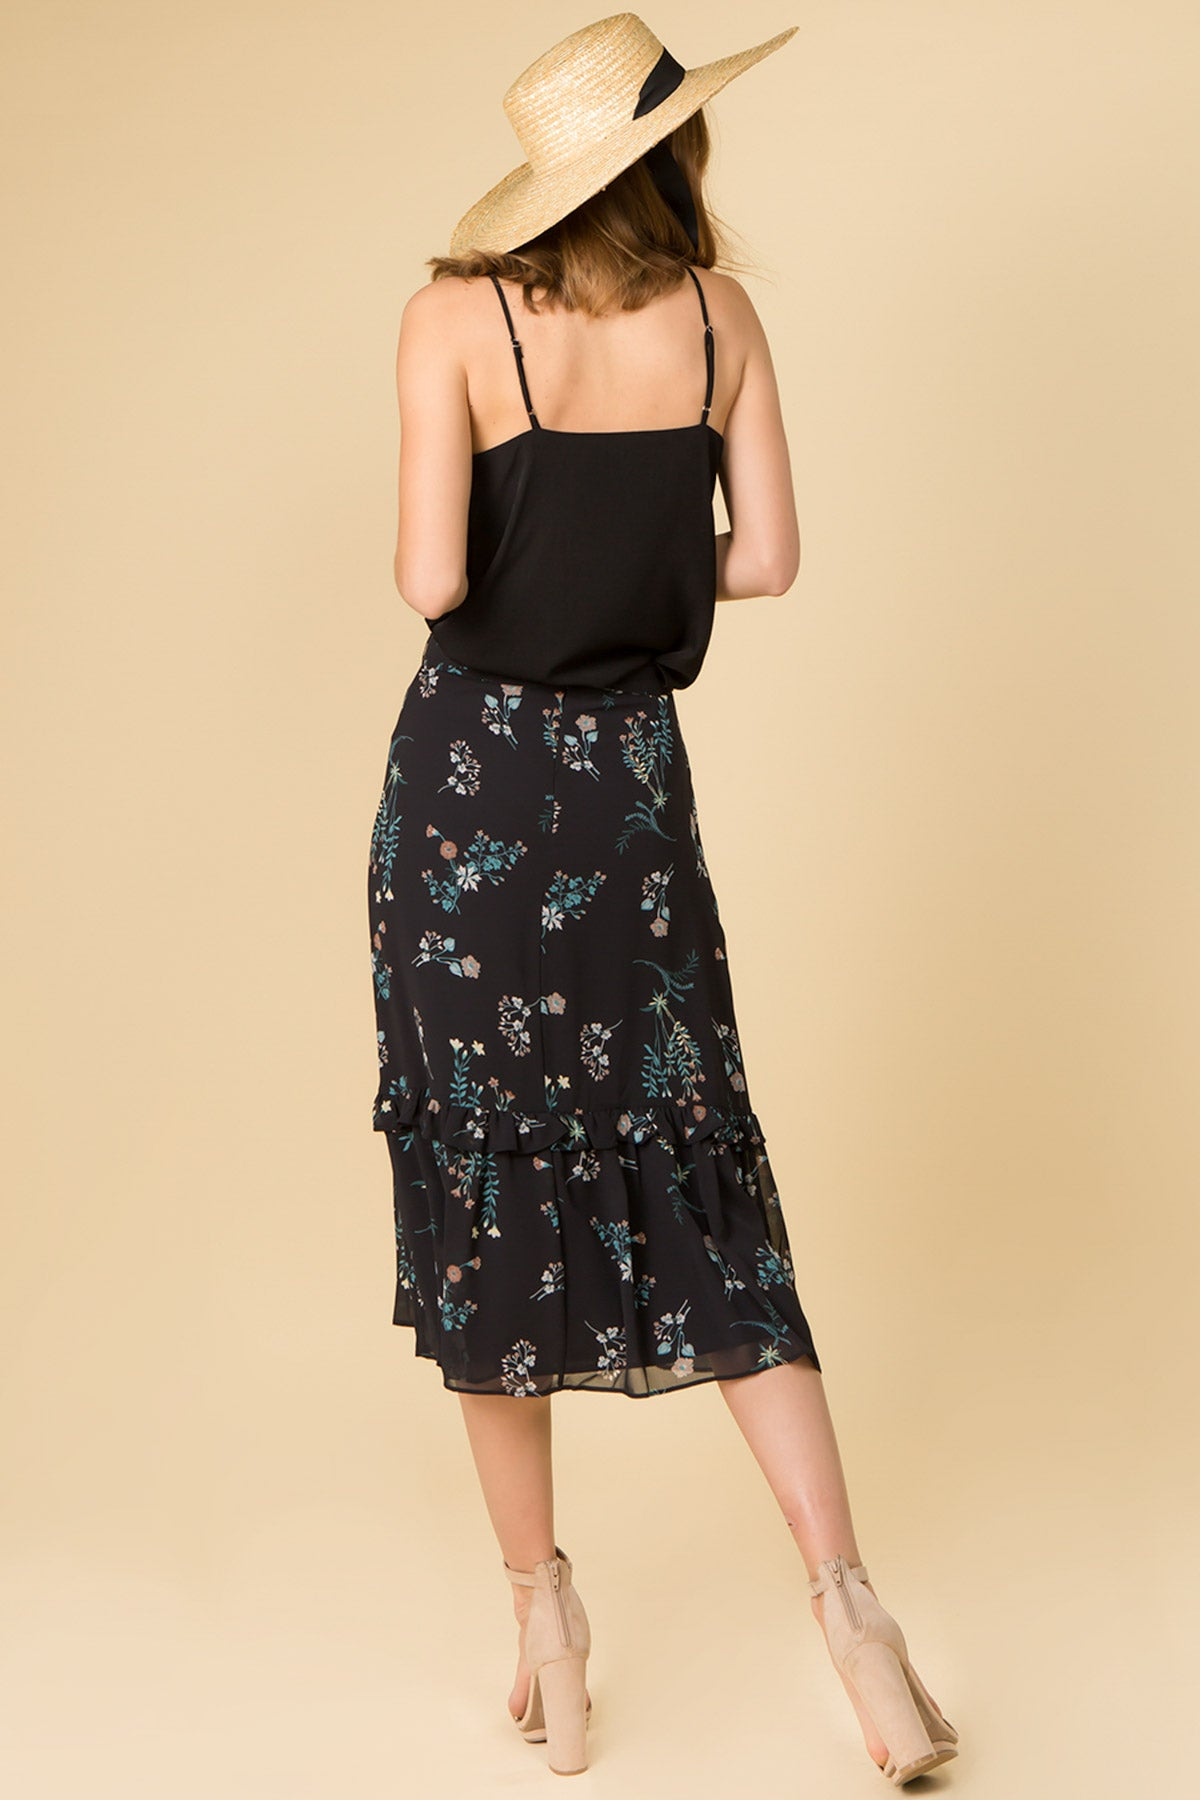 FLORAL PRINT RUFFLE SKIRT WITH WAIST TIES